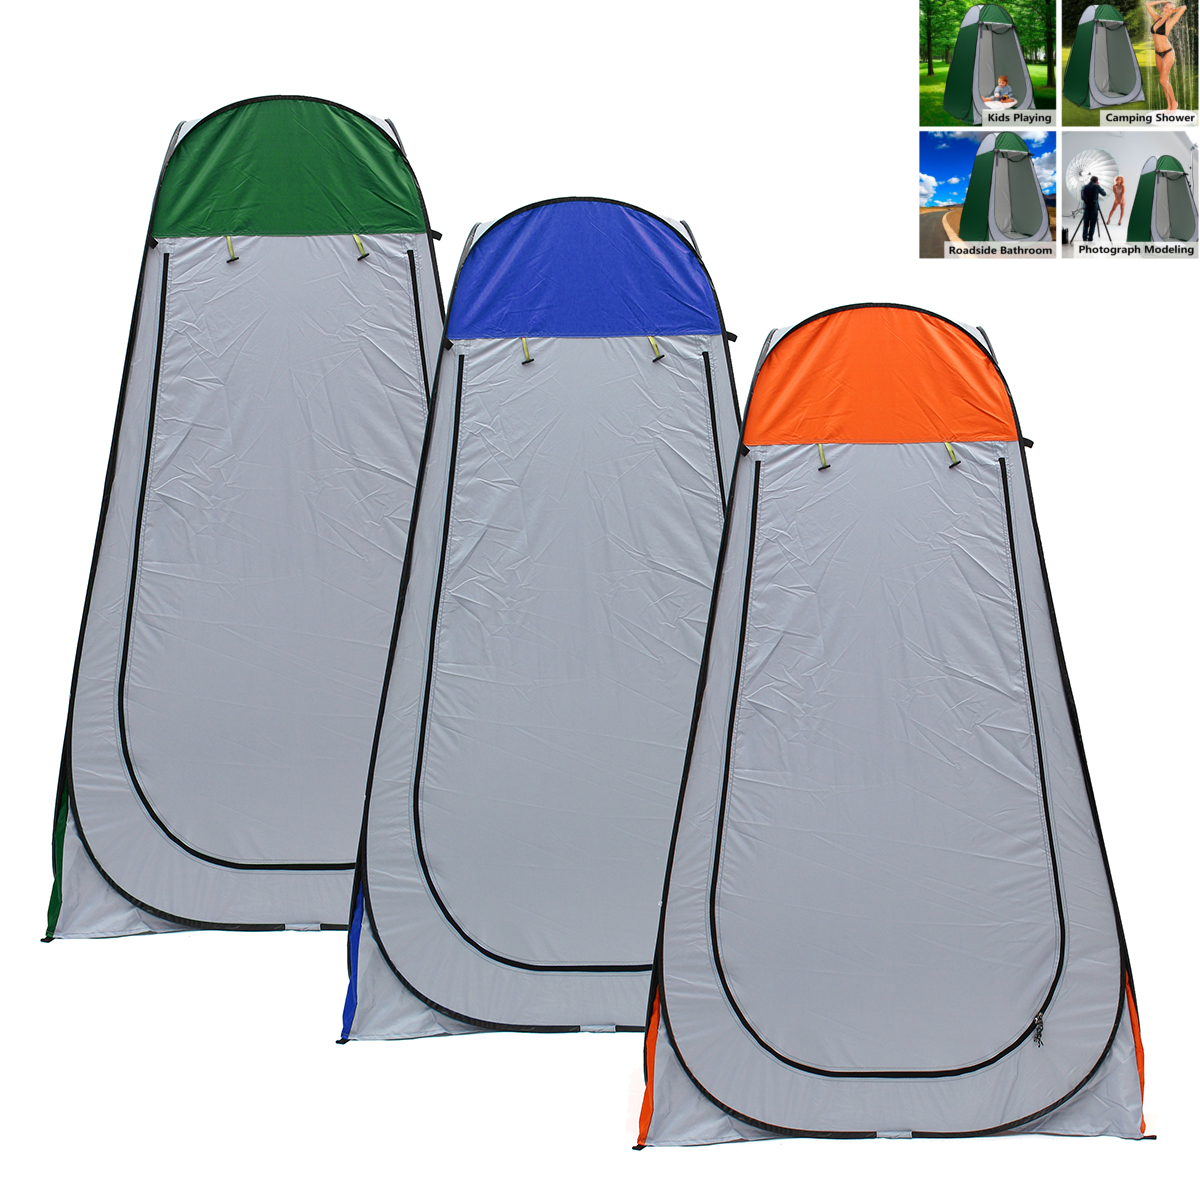 1.2x1.2x1.9m Portable Pop-up Tent Camping Travel Toilet